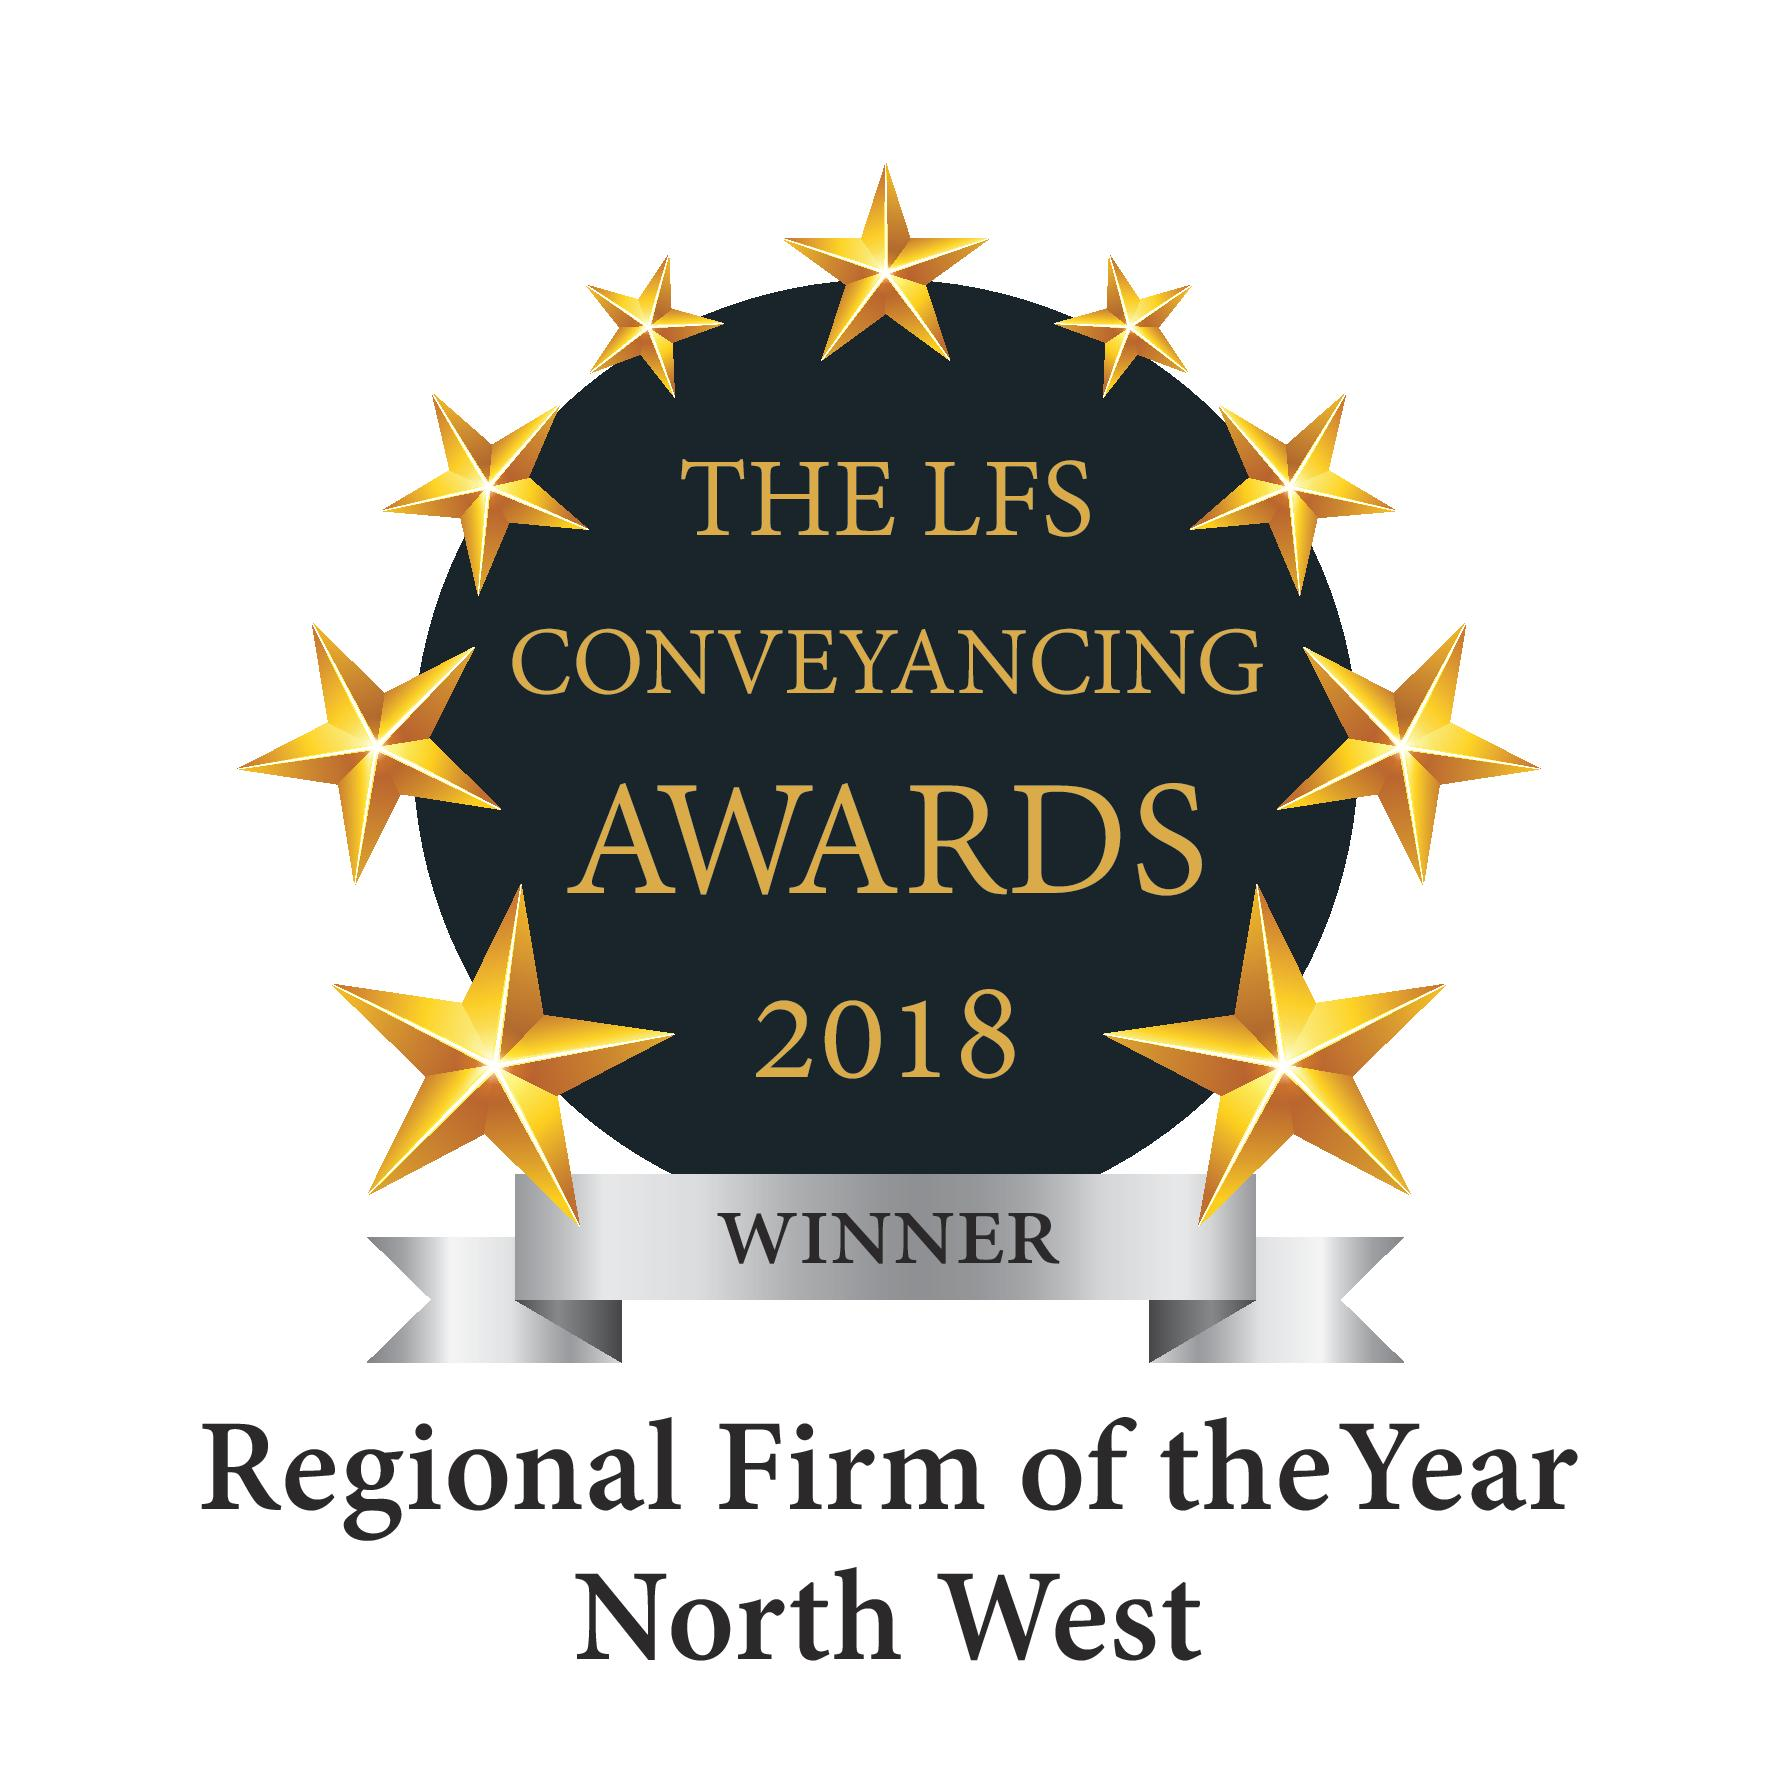 Regional Firm Of The Year North West_win 2018-page-001